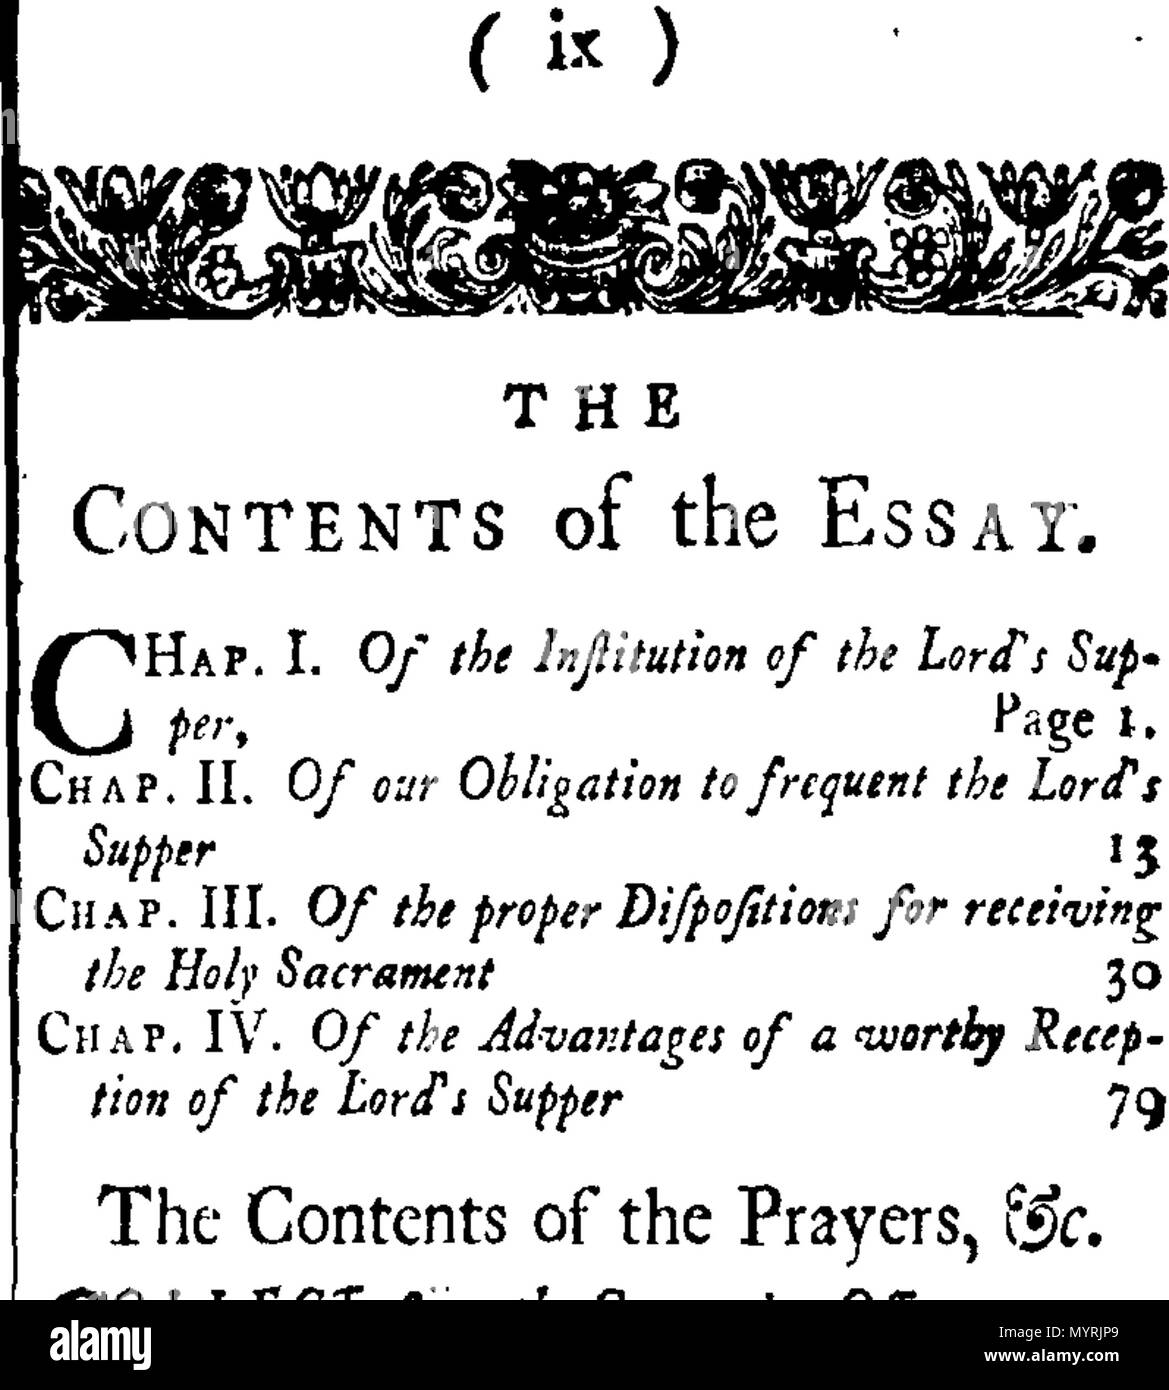 english fleuron from book an essay on the lords supper wherein   english fleuron from book an essay on the lords supper wherein is  shewn the nature and end of that sacrament the obligation to frequent it   from thesis to essay writing also essay papers online english essay outline format